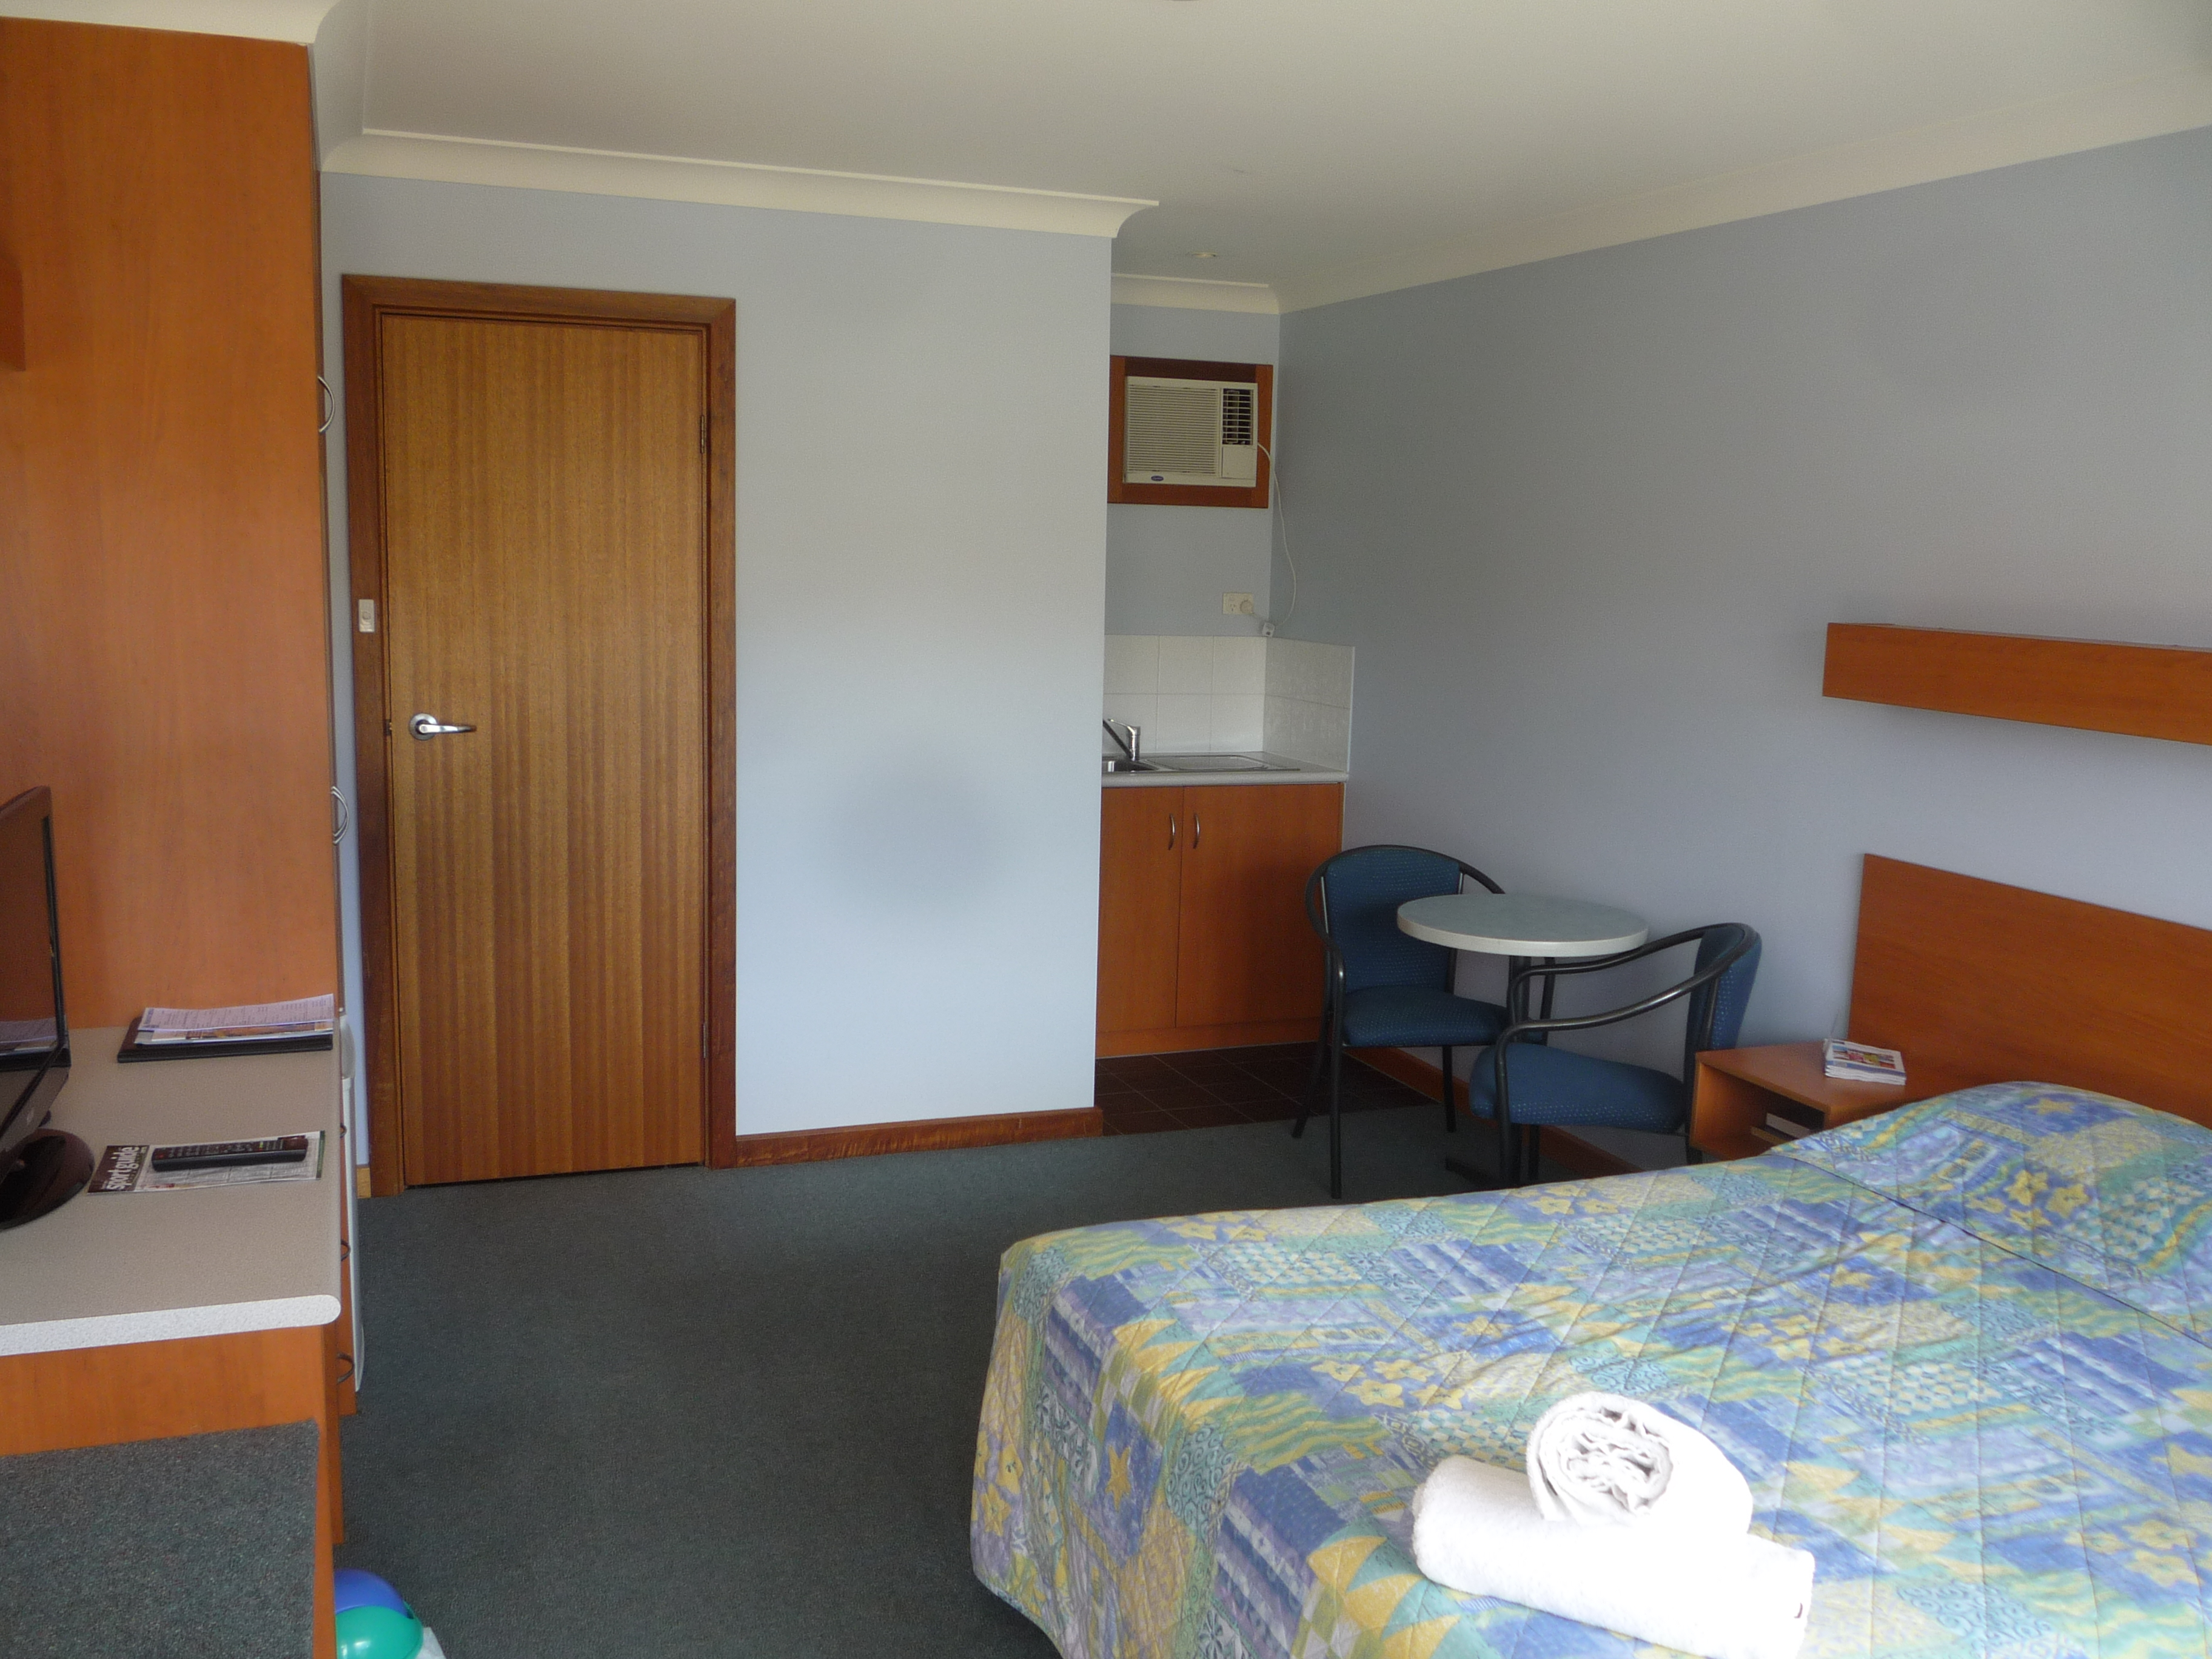 Lacepede Bay Motel room